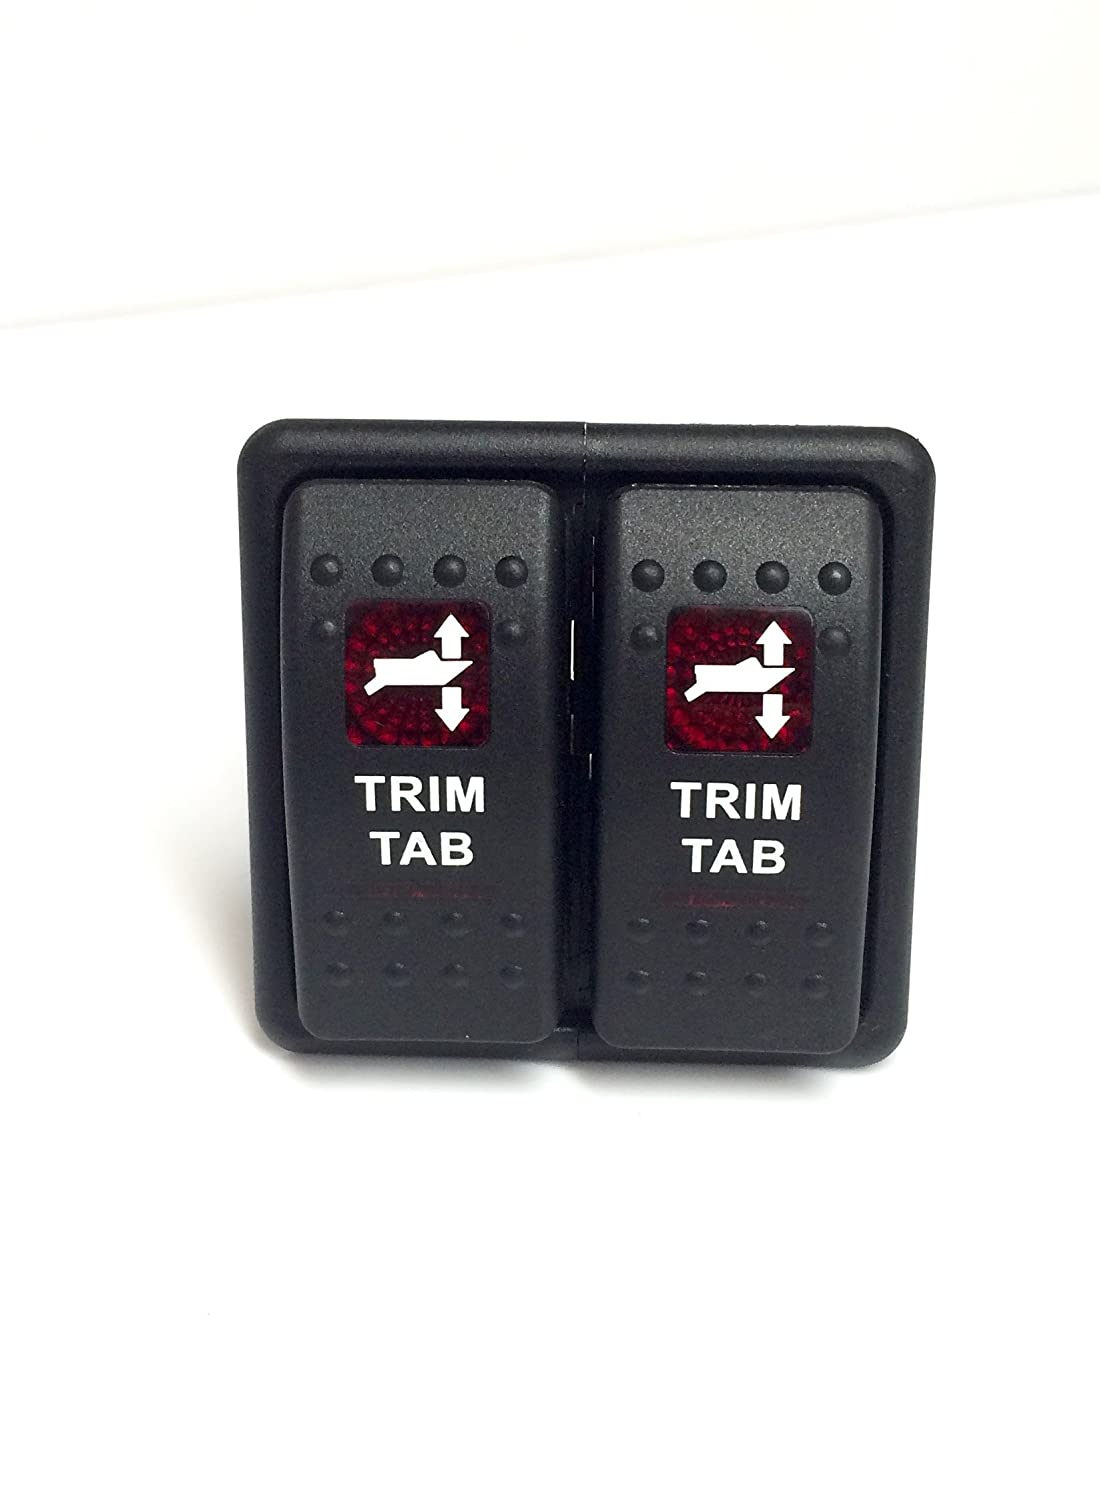 Marine Grade Bennet Trim Tab Switch, Switch Cover, and Drop in Panel. Pre-Wired Southernmarine